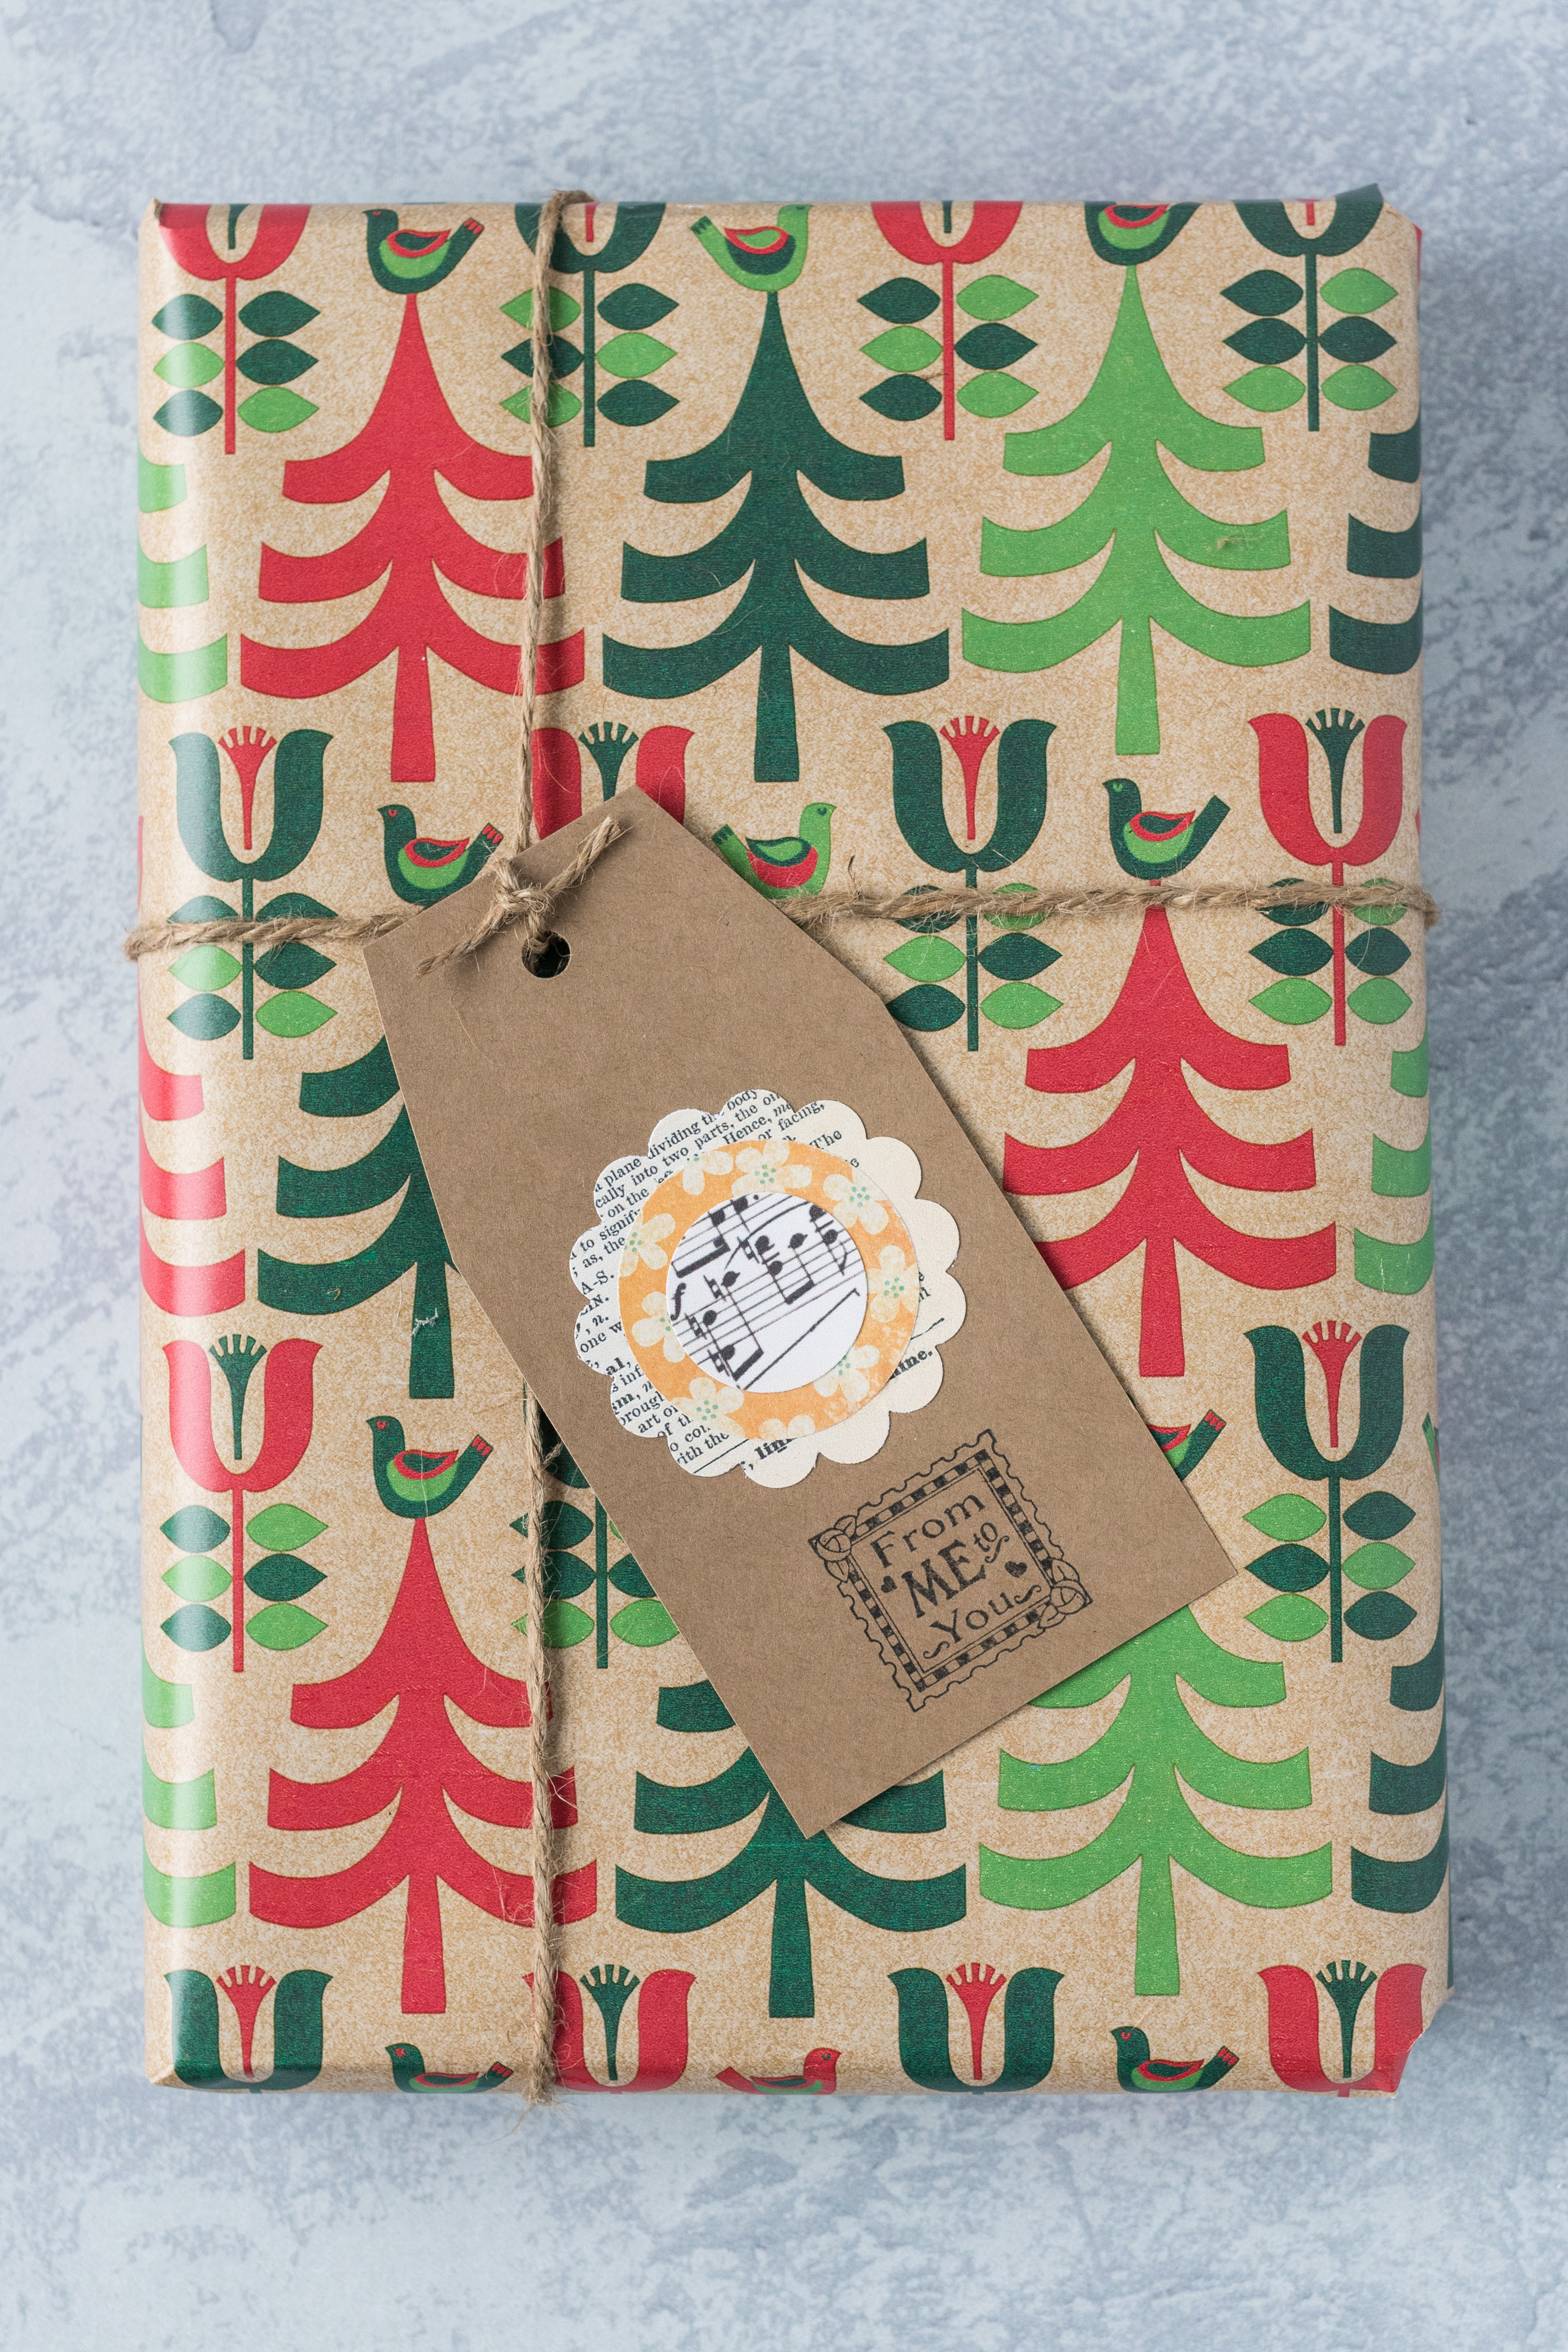 Homemade gift tag with a handmade scrapbook embellishment. #gifttag #kraftgifttag #scrapbookembellishment | https://www.roseclearfield.com